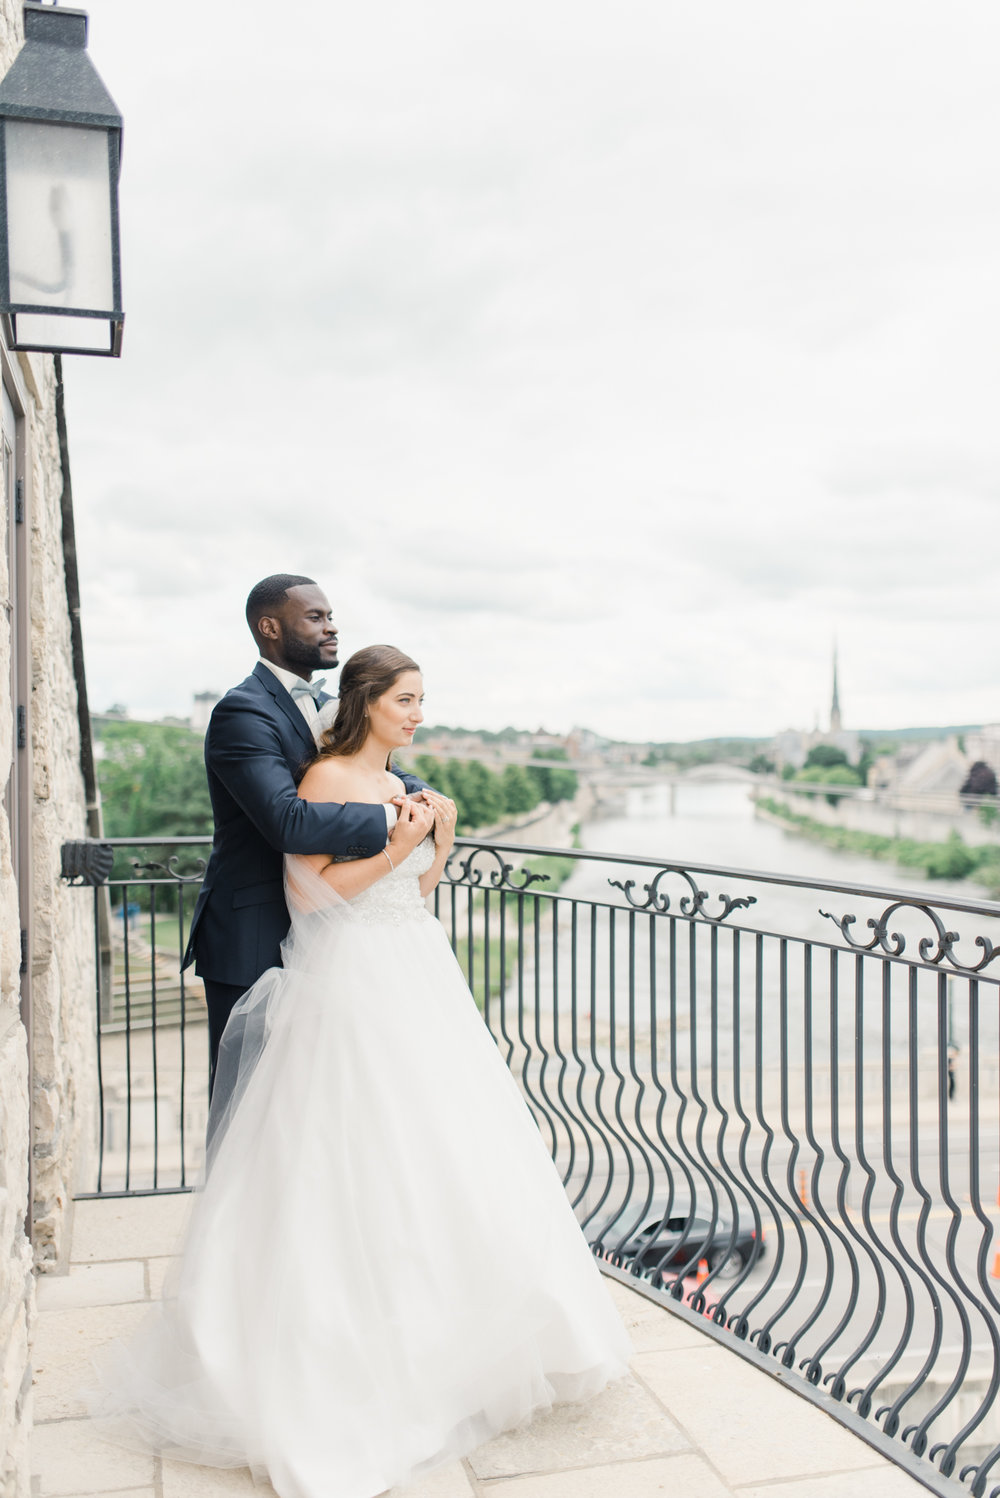 Bright and Airy Wedding Photography